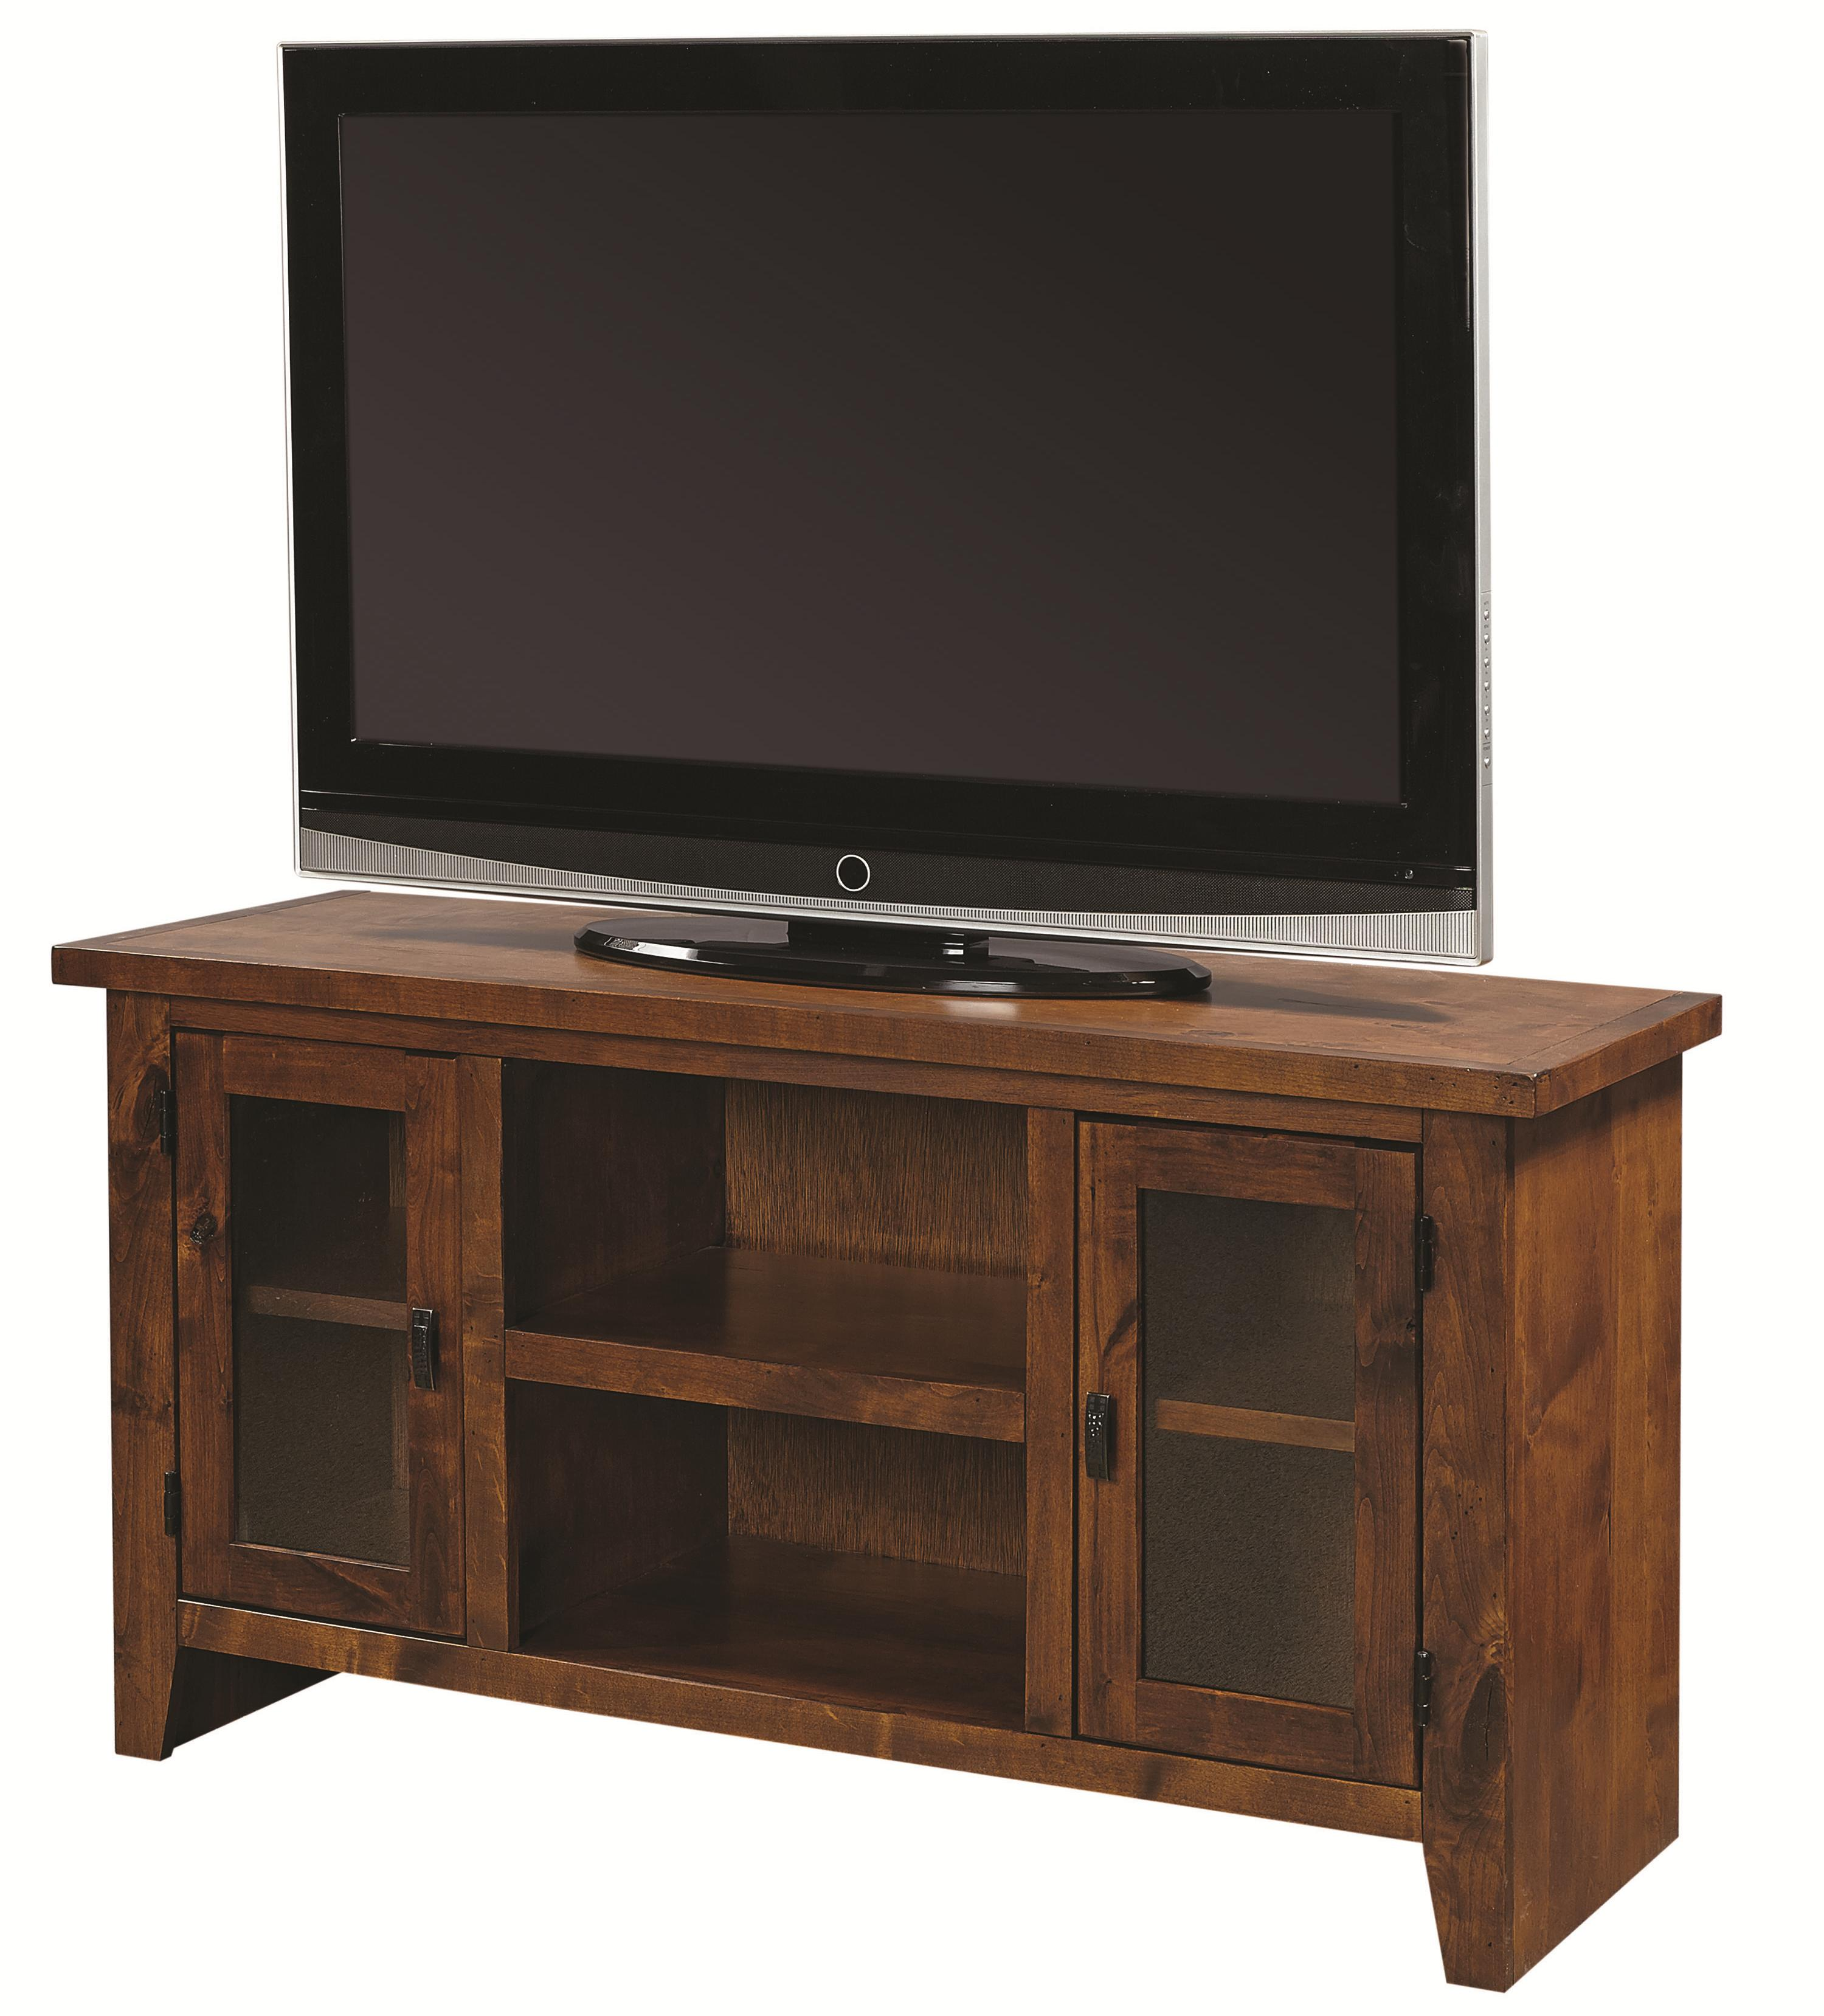 "Alder Grove 50"" Console with Doors by Aspenhome at Bullard Furniture"